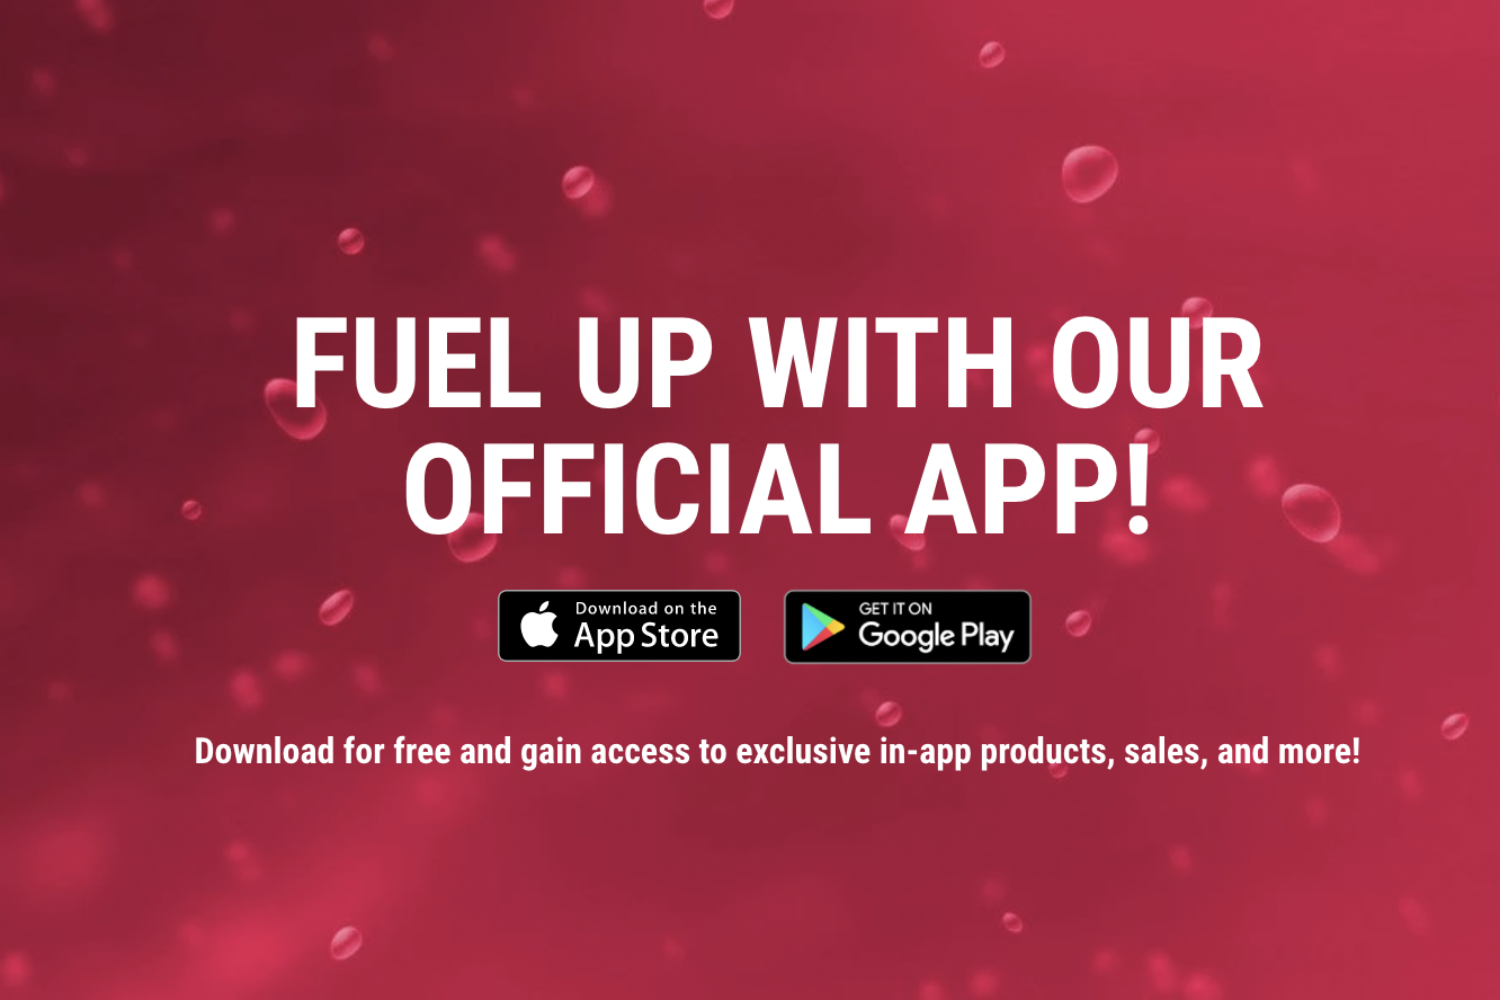 Download the G FUEL App